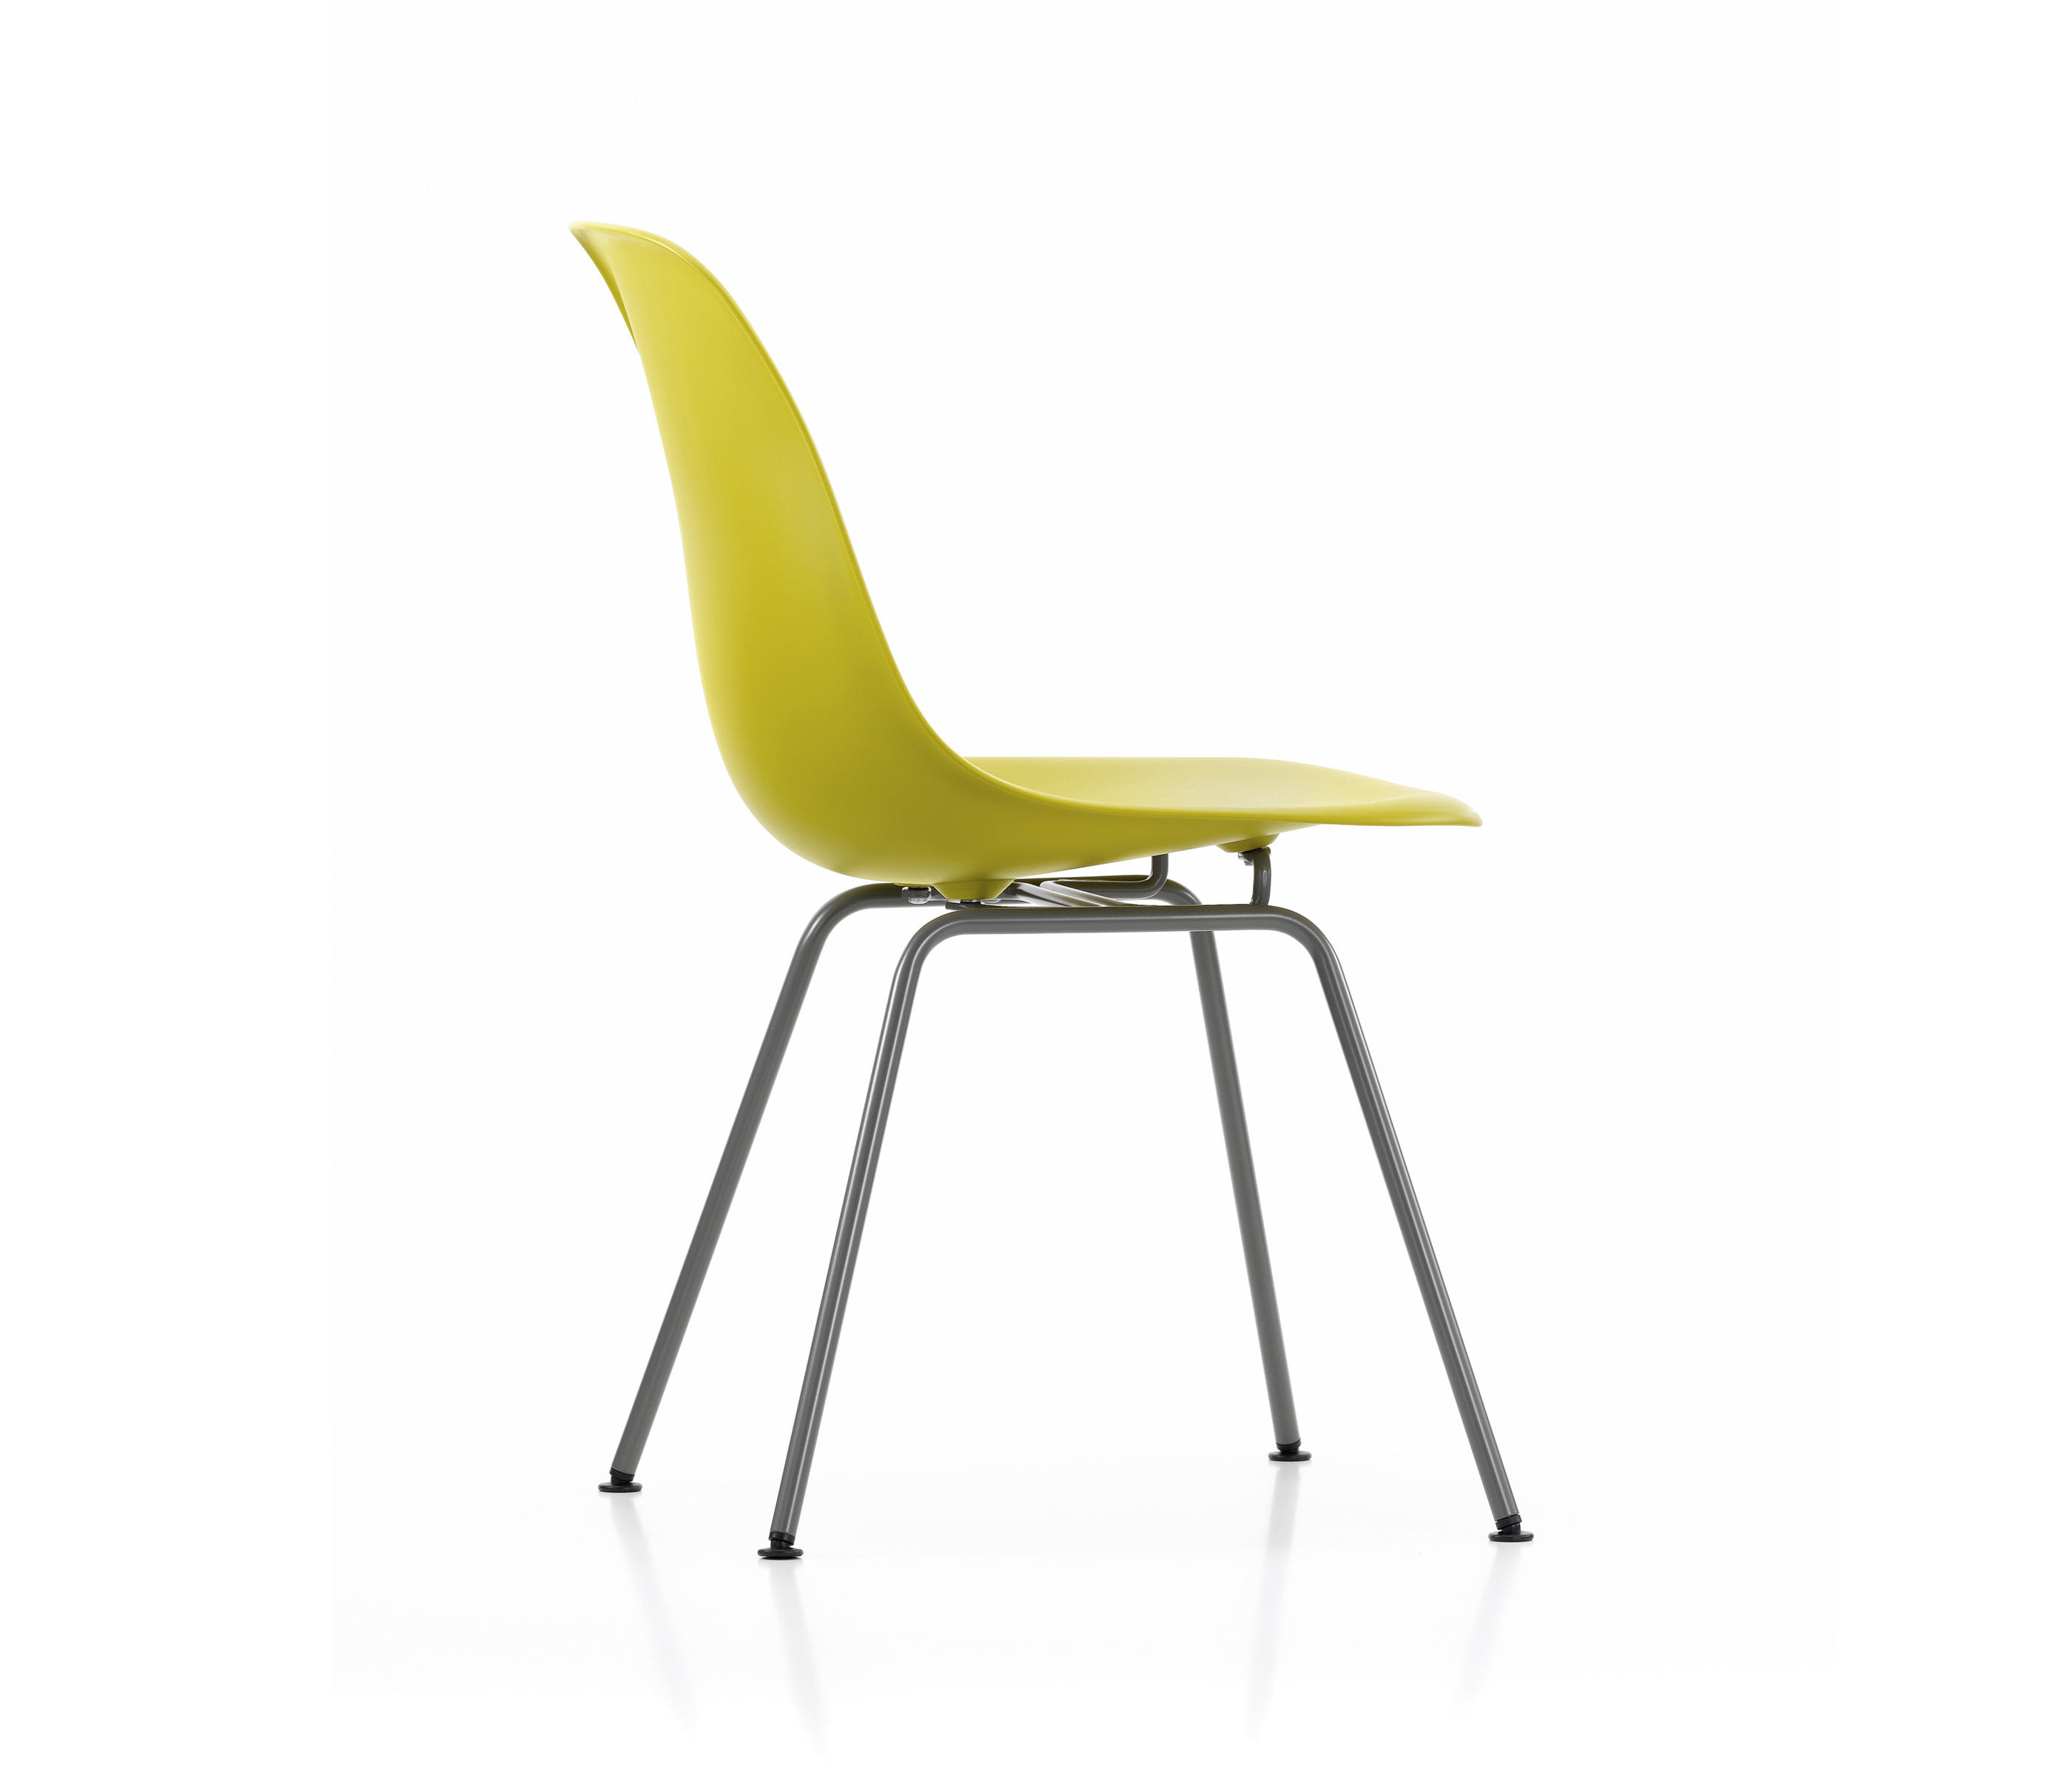 eames plastic side chair dsx multipurpose chairs from. Black Bedroom Furniture Sets. Home Design Ideas